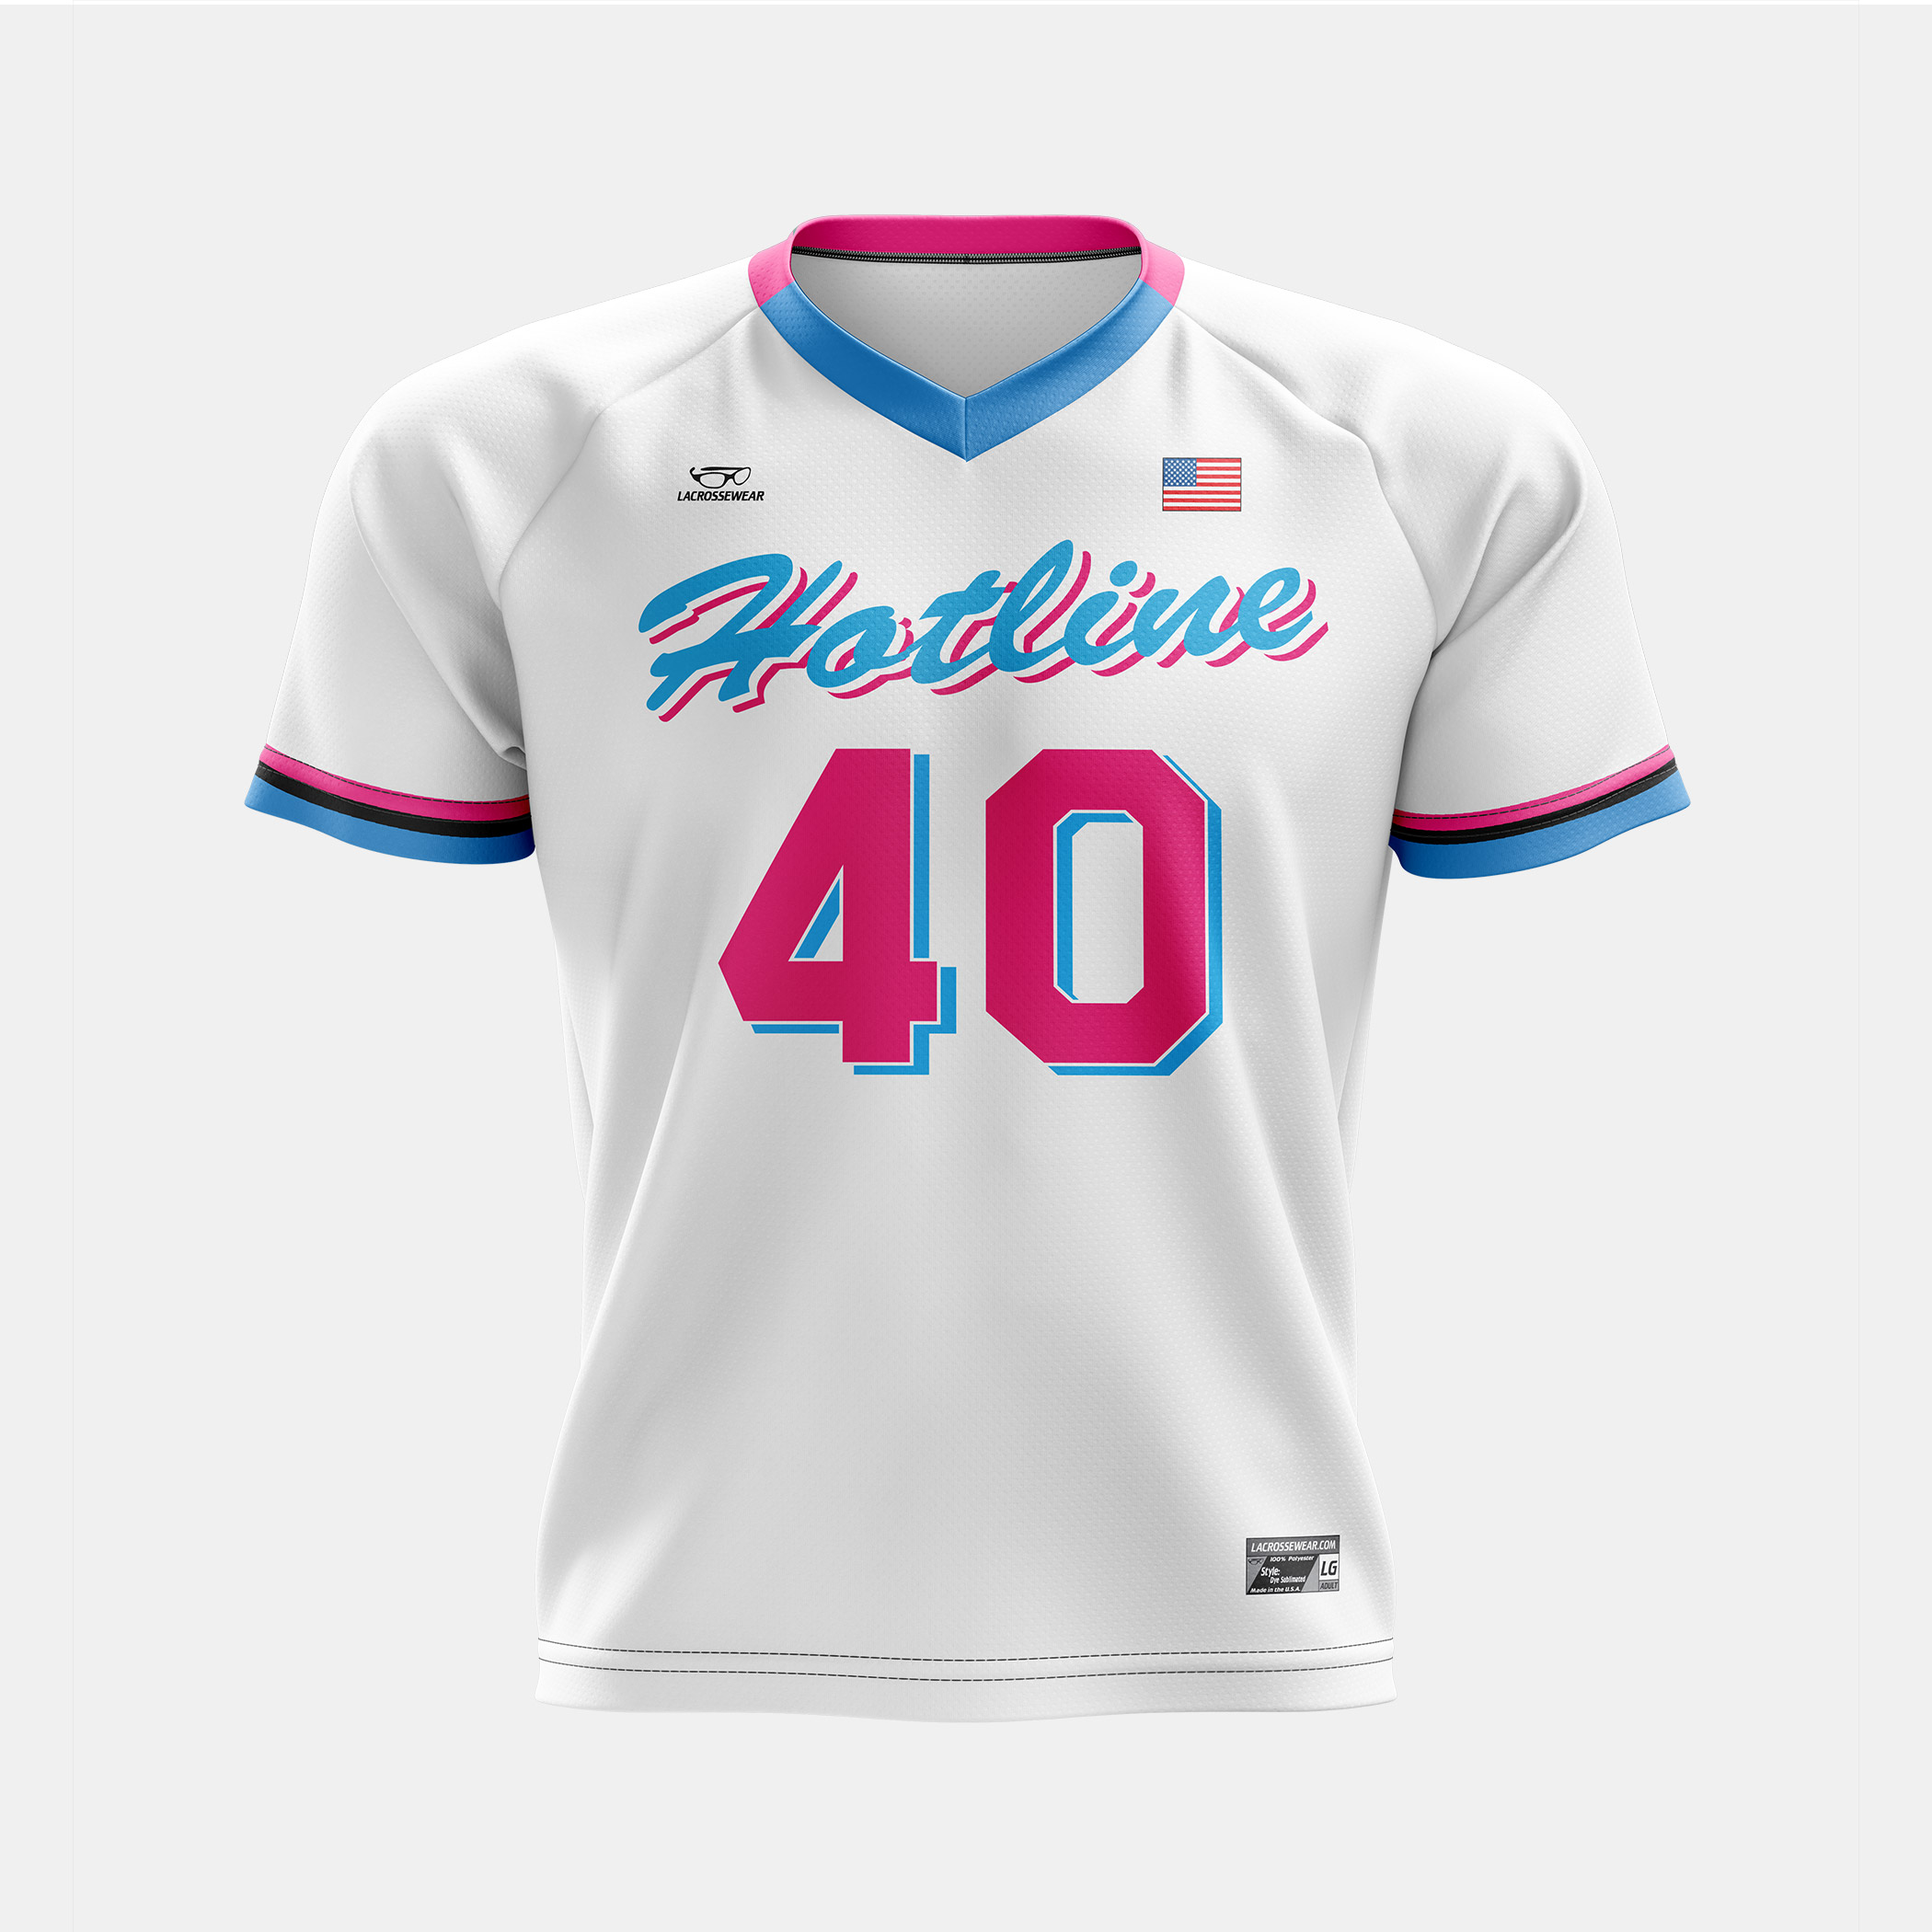 Hotline Jersey White Front